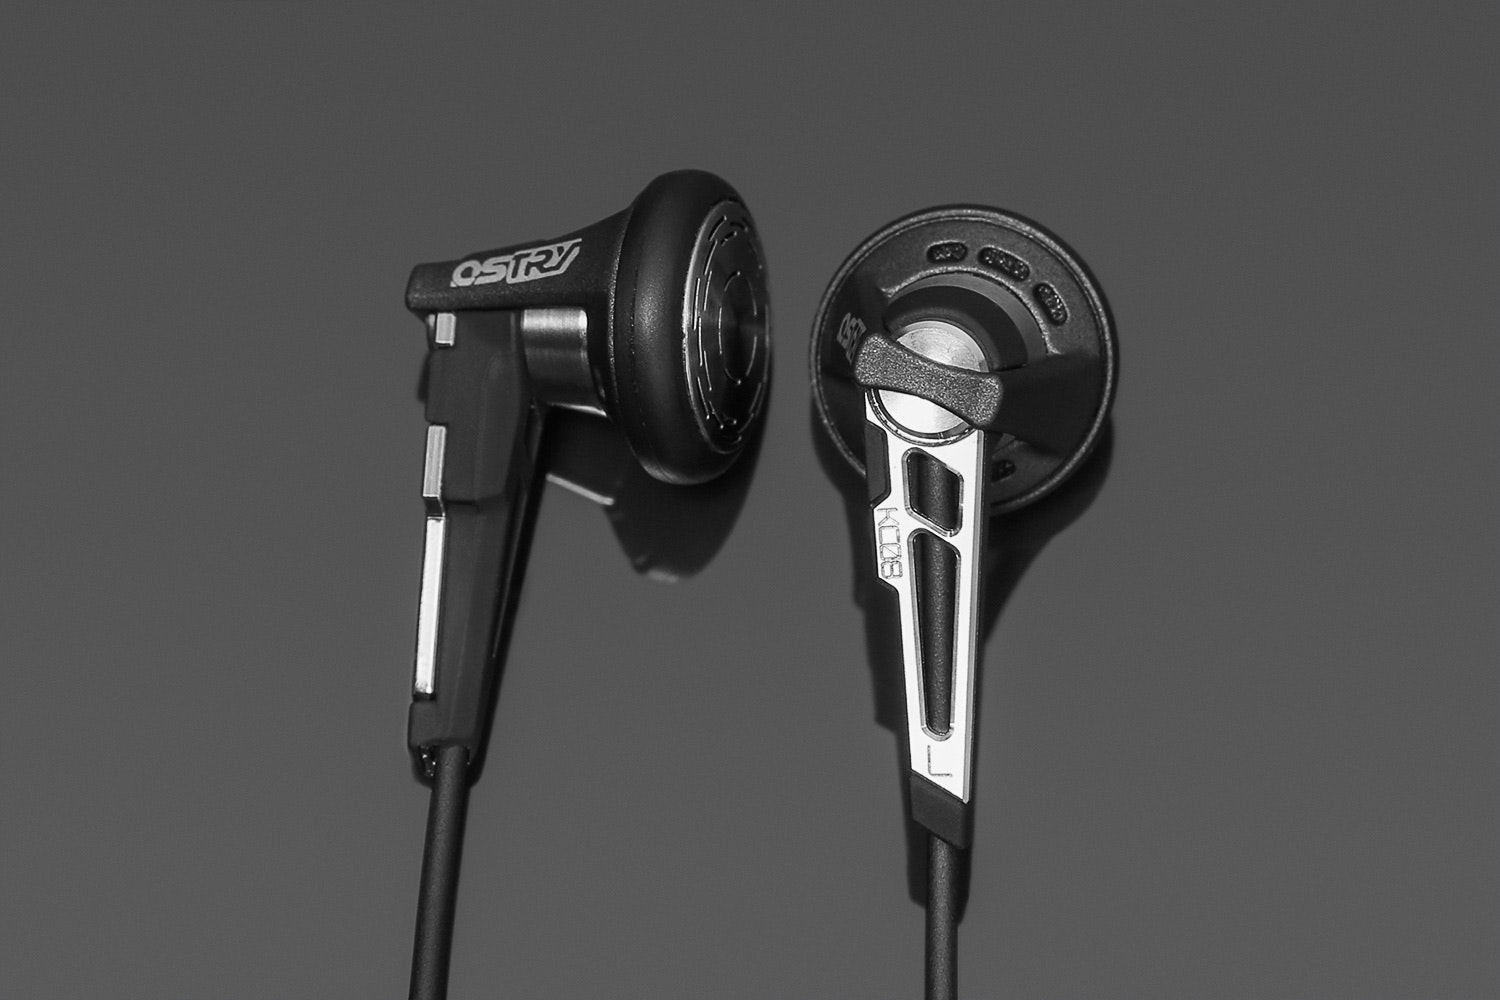 Ostry KC08 and KC08T Earbuds